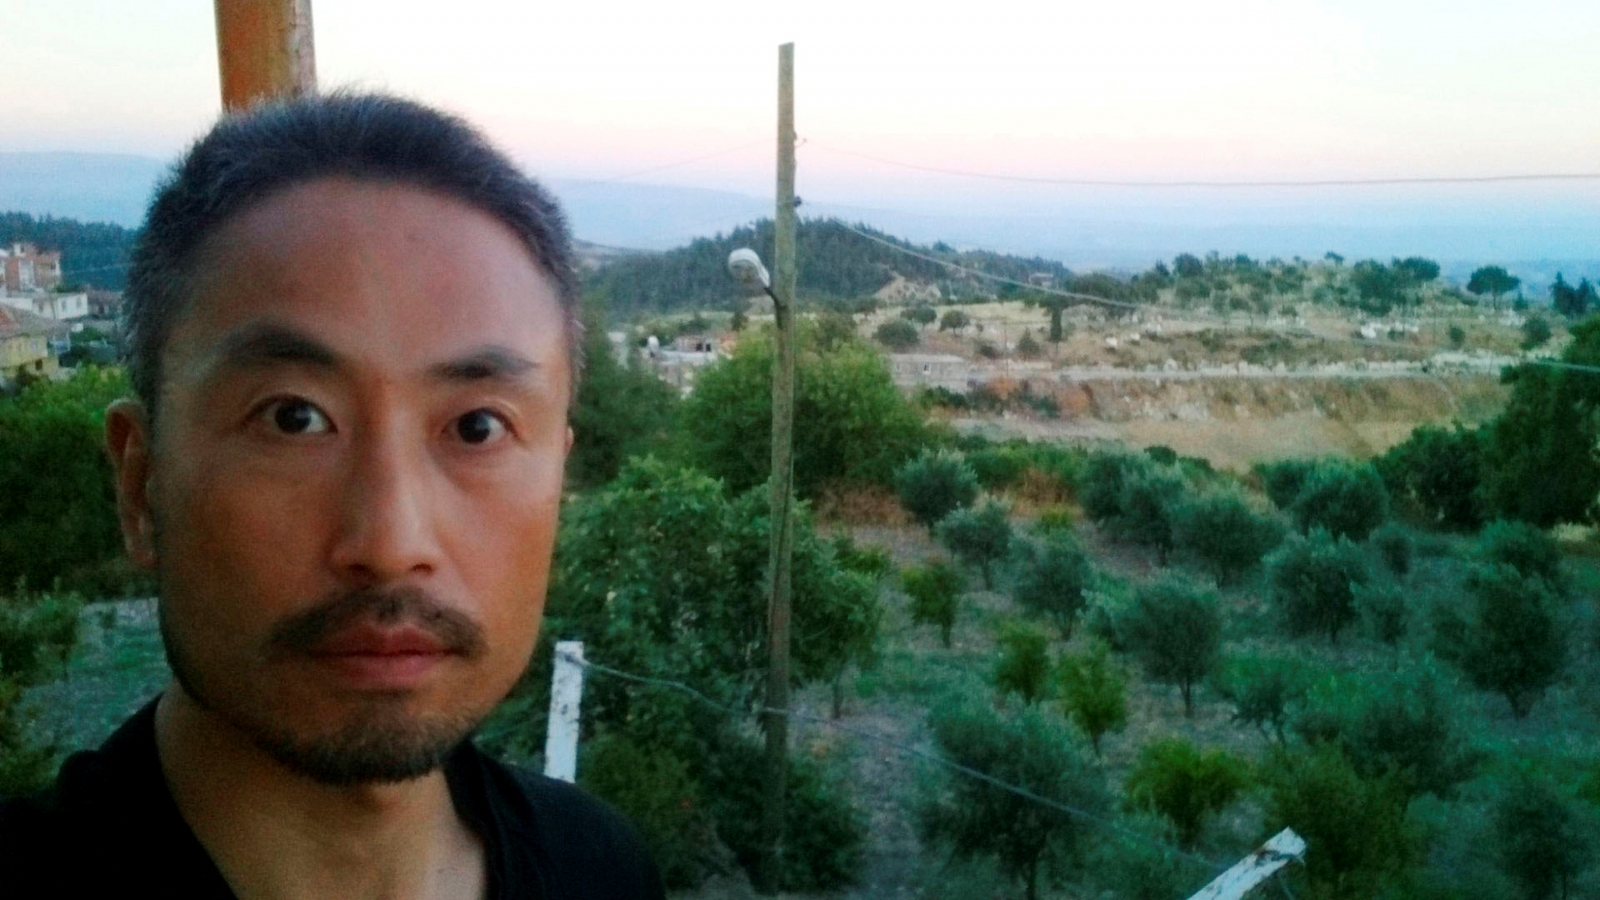 Japanes journalist Jumpei Yasuda